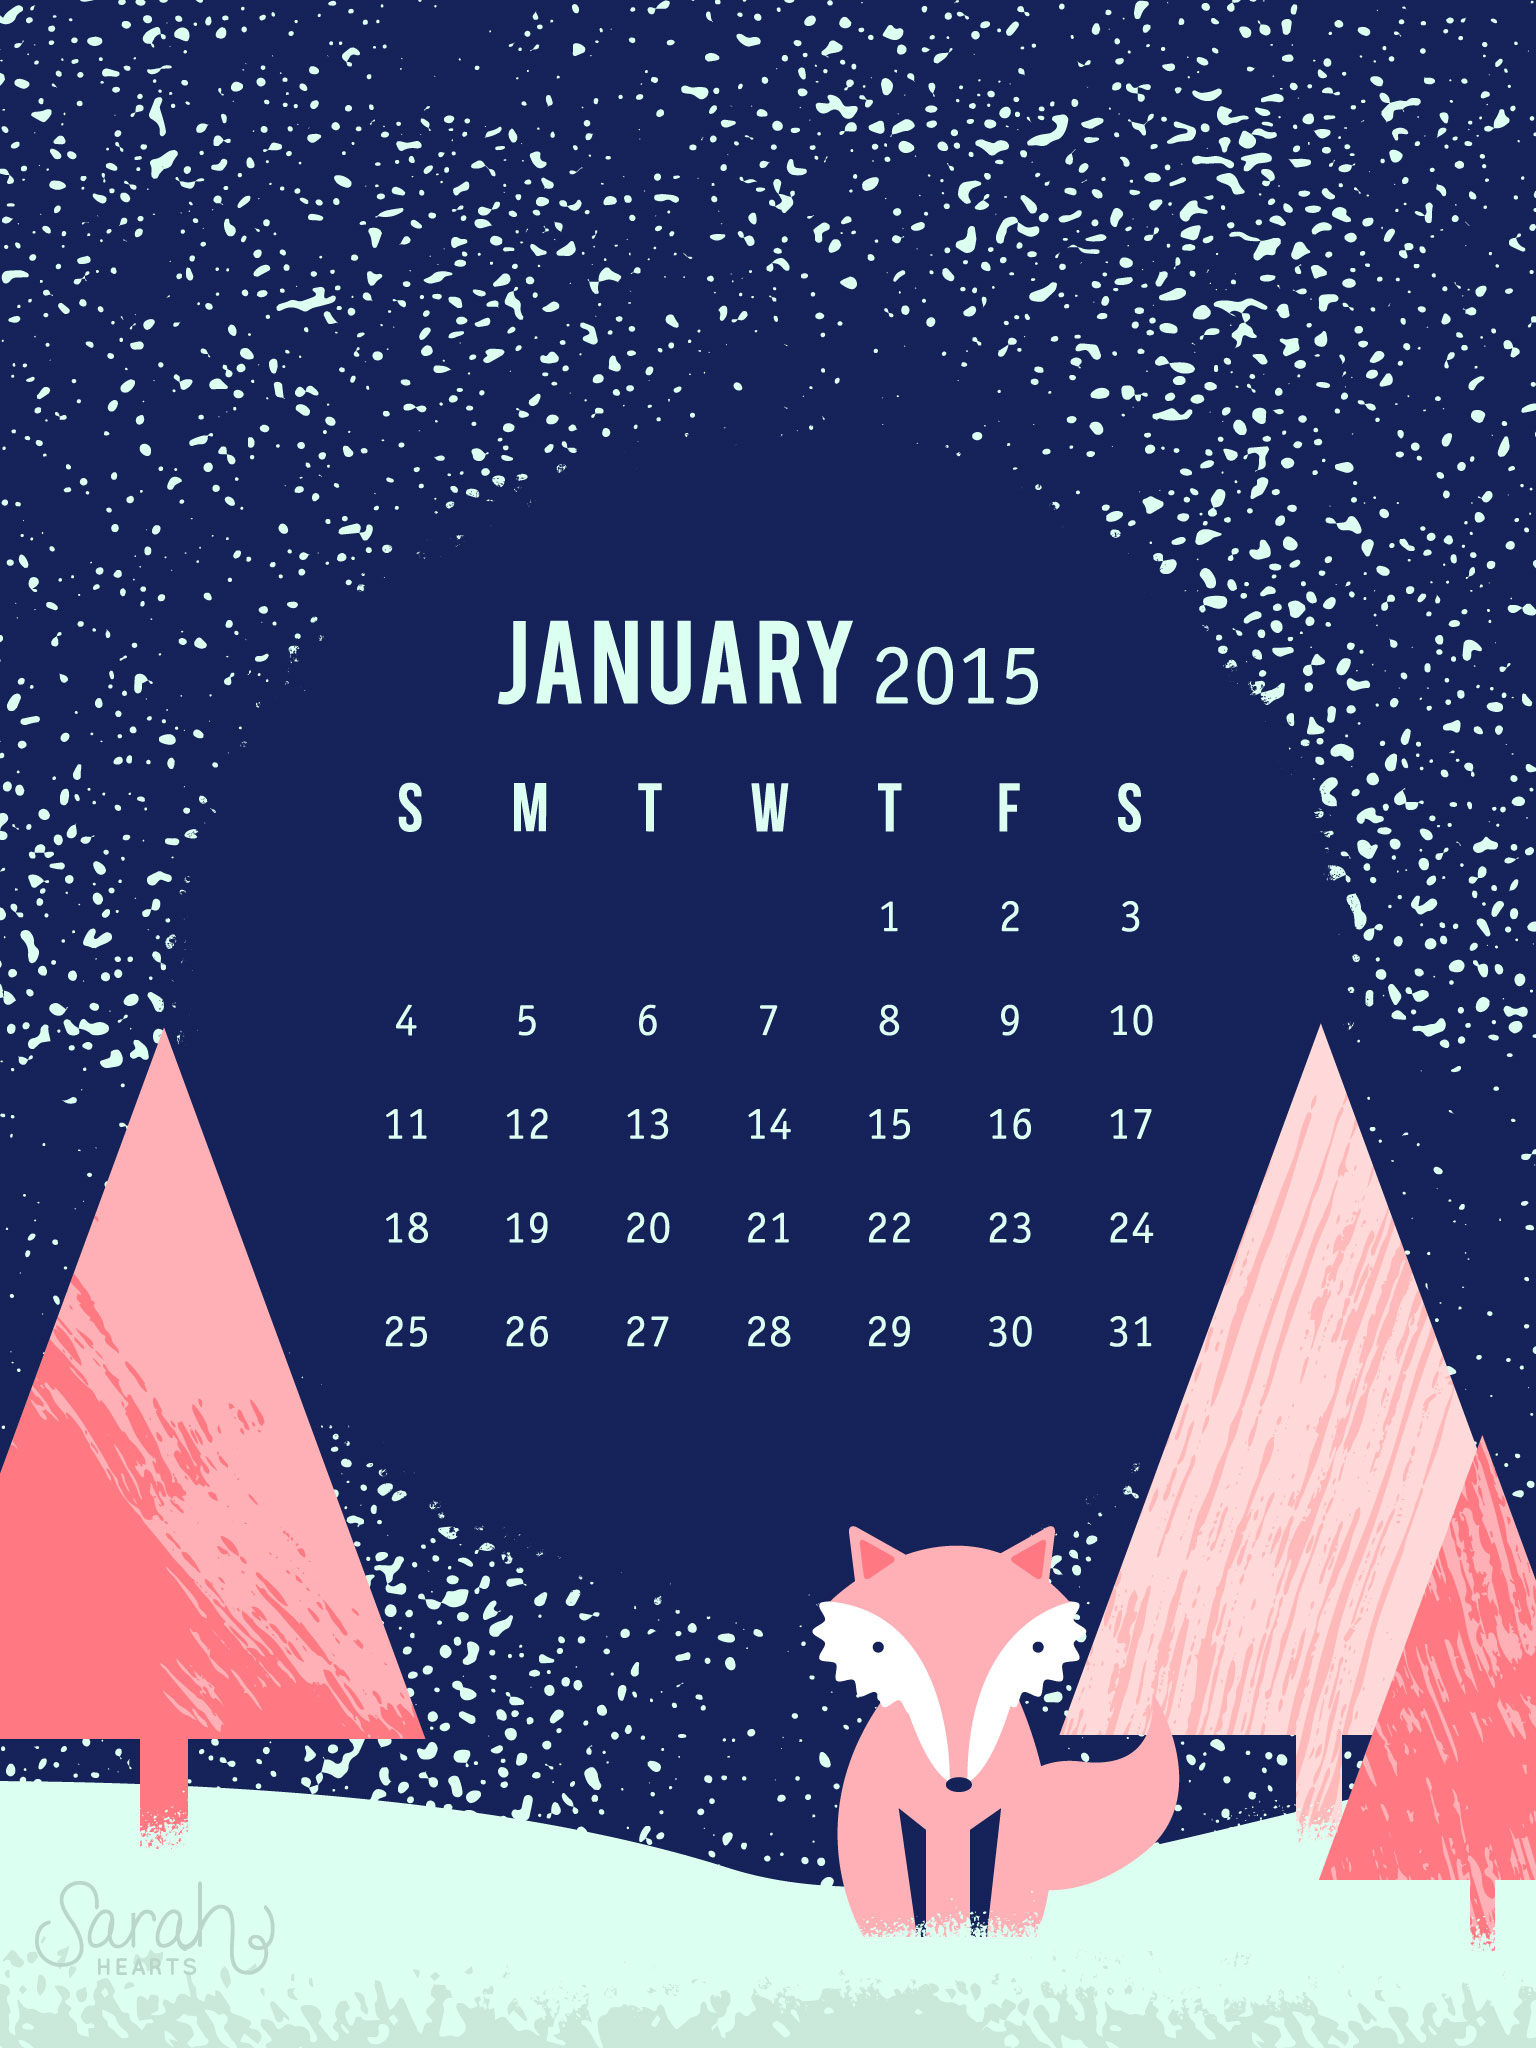 January 2015 Calendar Wallpaper   Sarah Hearts 1536x2048